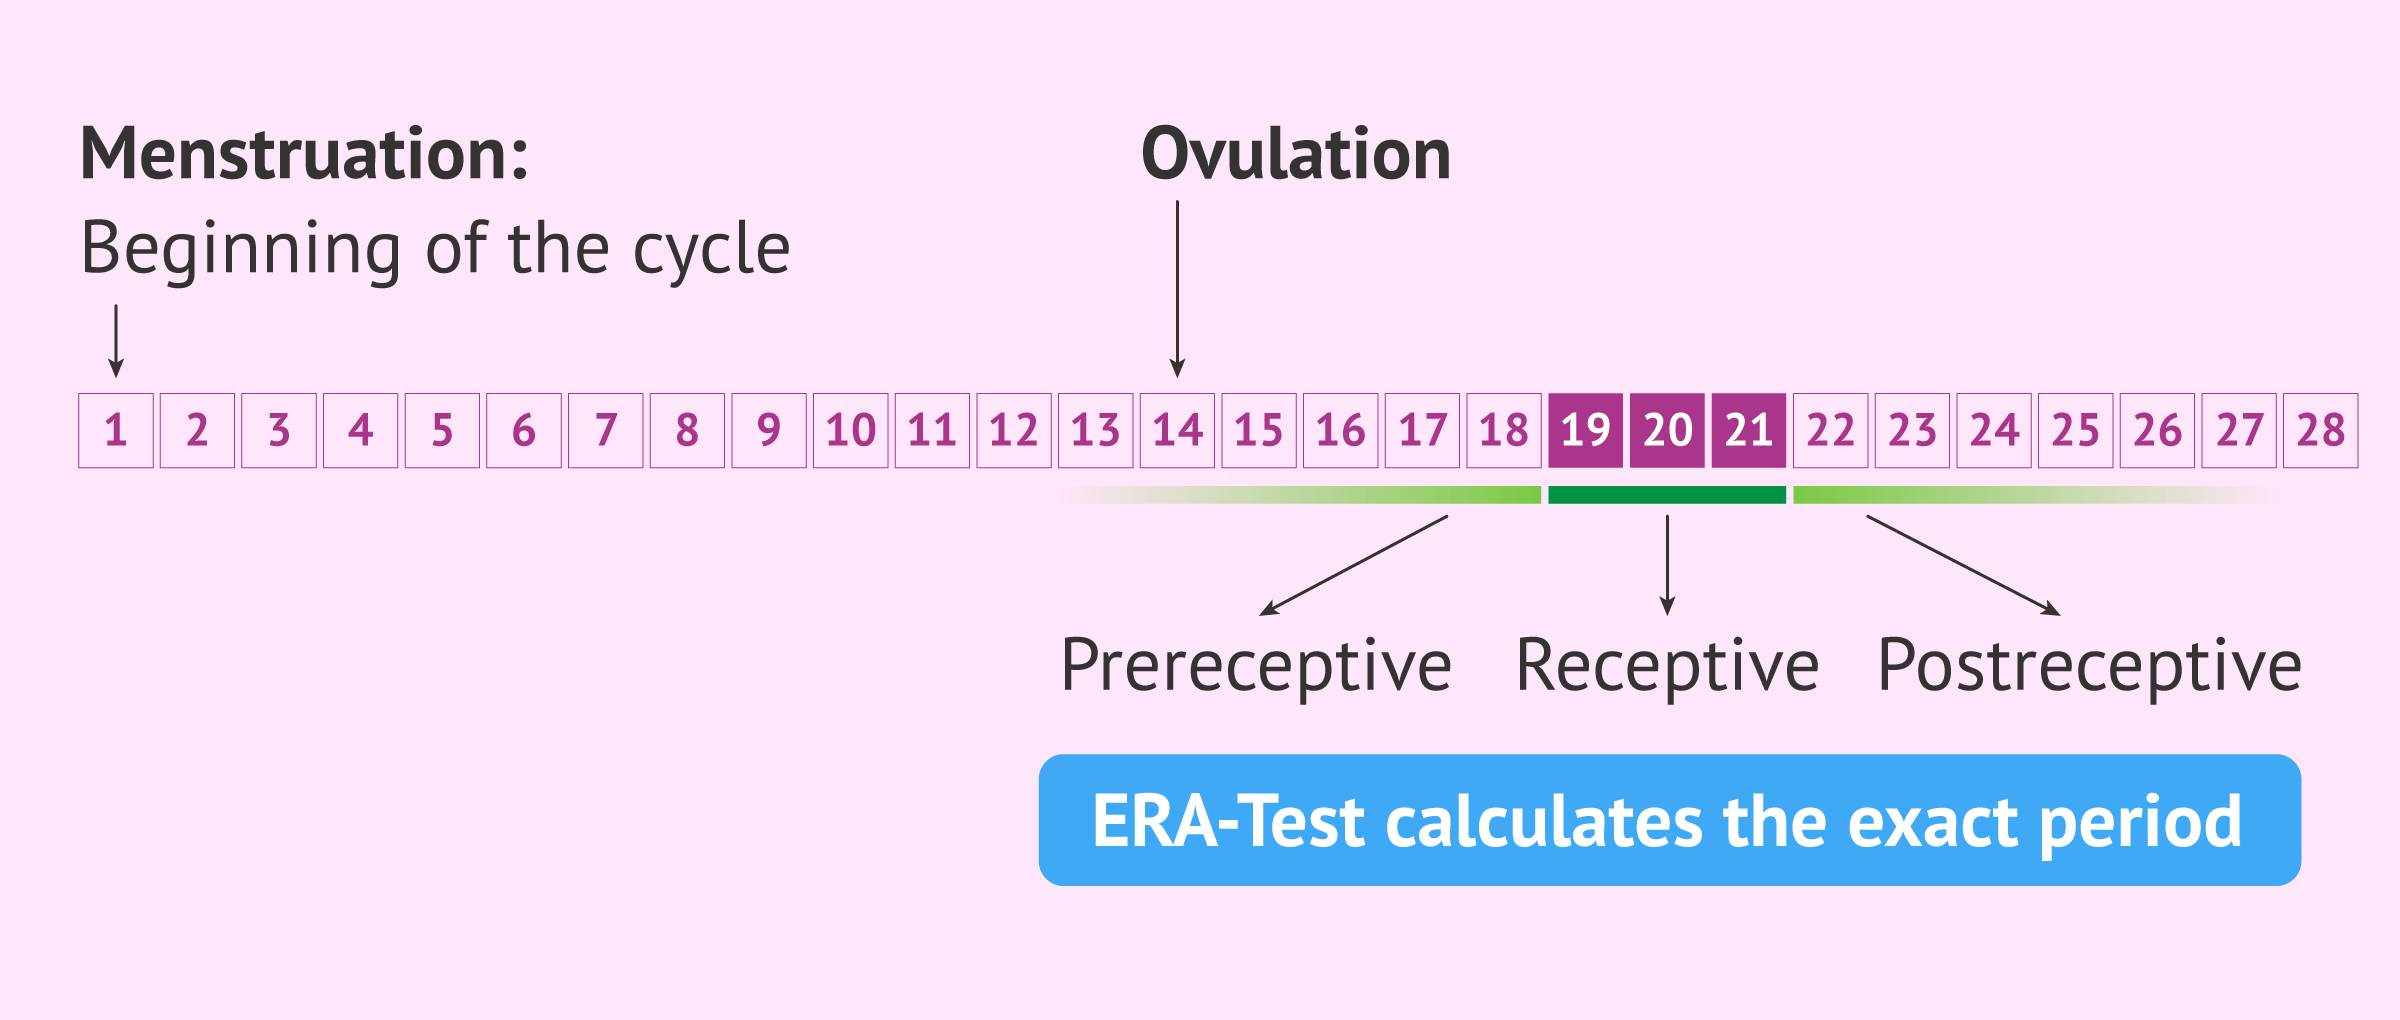 Objective of the ERA test